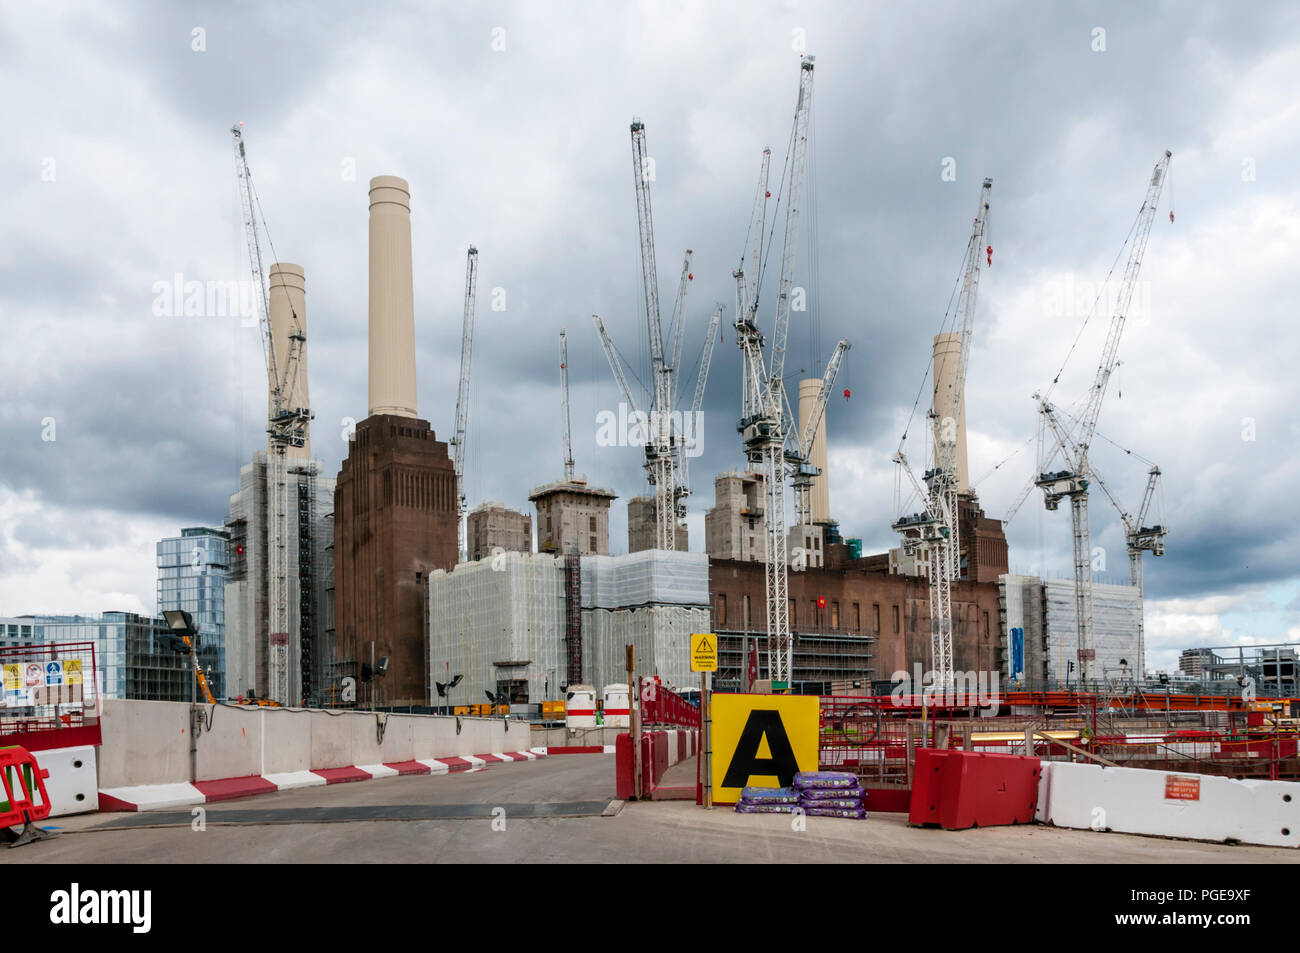 Tower cranes clustered around Battersea Power Station. - Stock Image